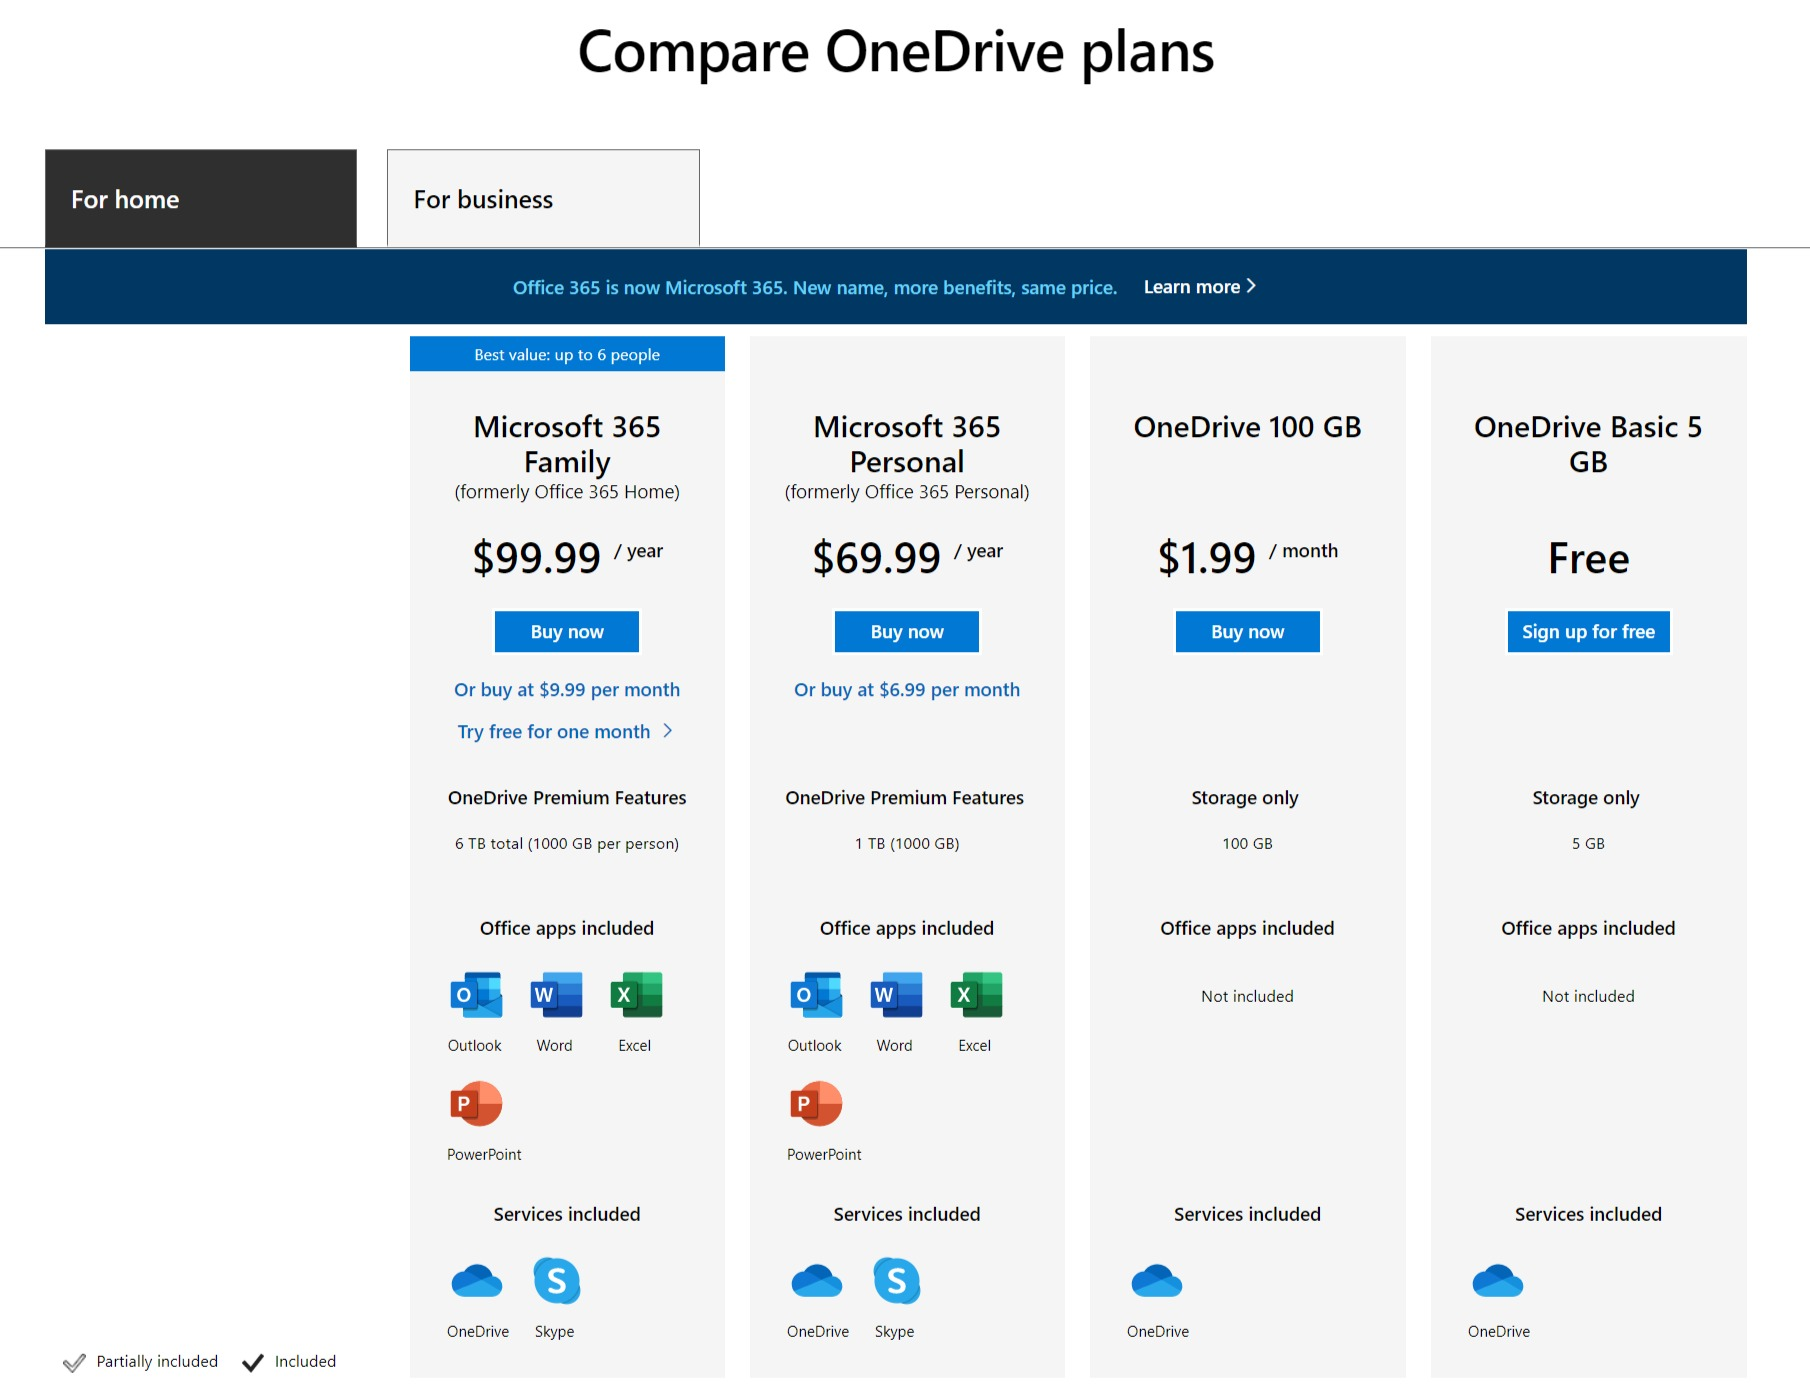 oneDrive pricing chart